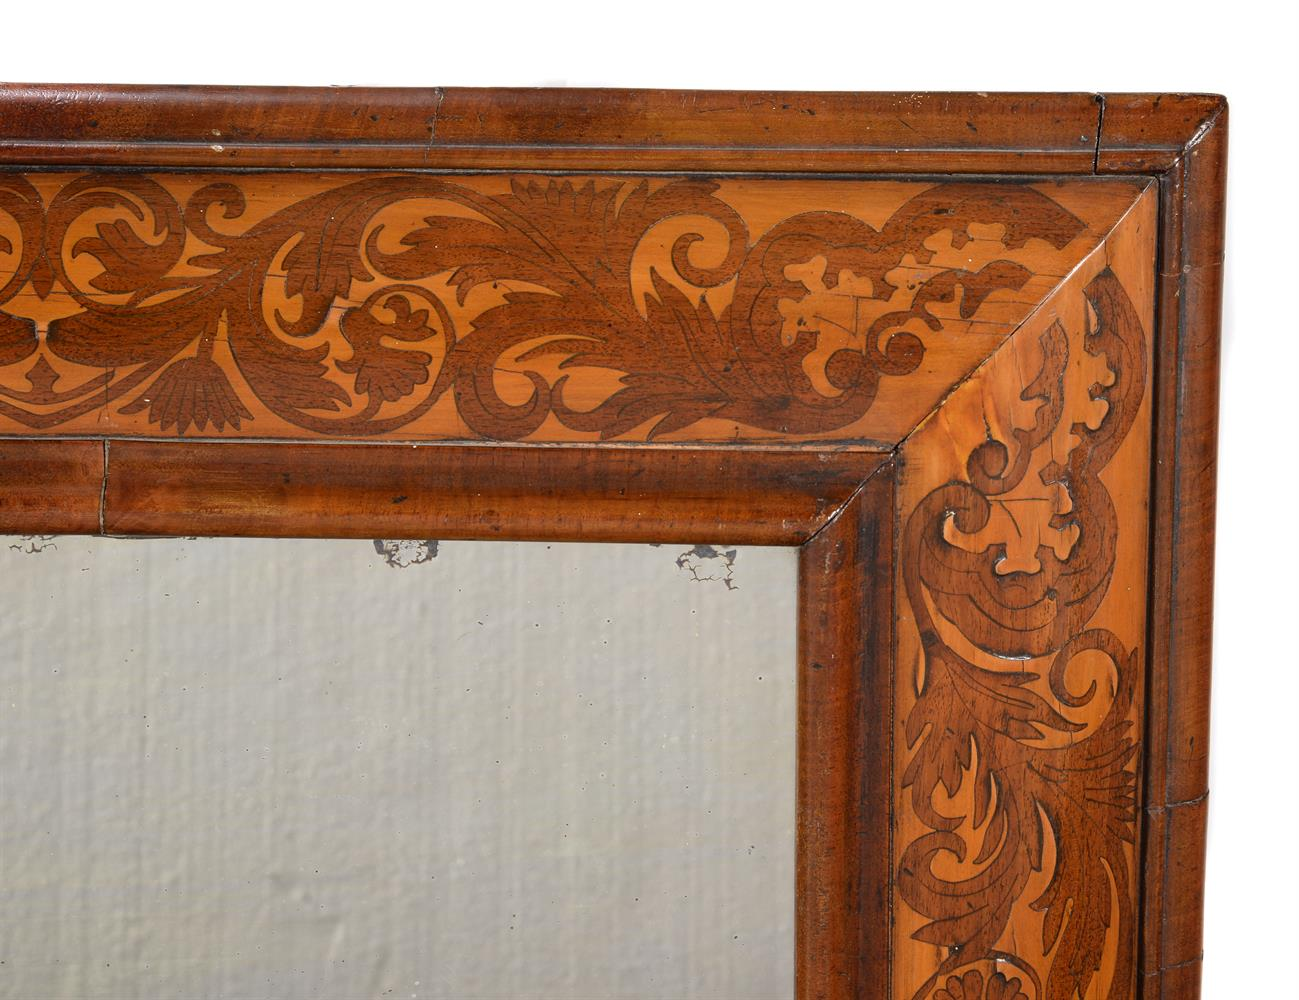 A WILLIAM & MARY WALNUT AND HOLLY MARQUETRY CUSHION FRAMED WALL MIRROR, CIRCA 1690 - Image 2 of 3